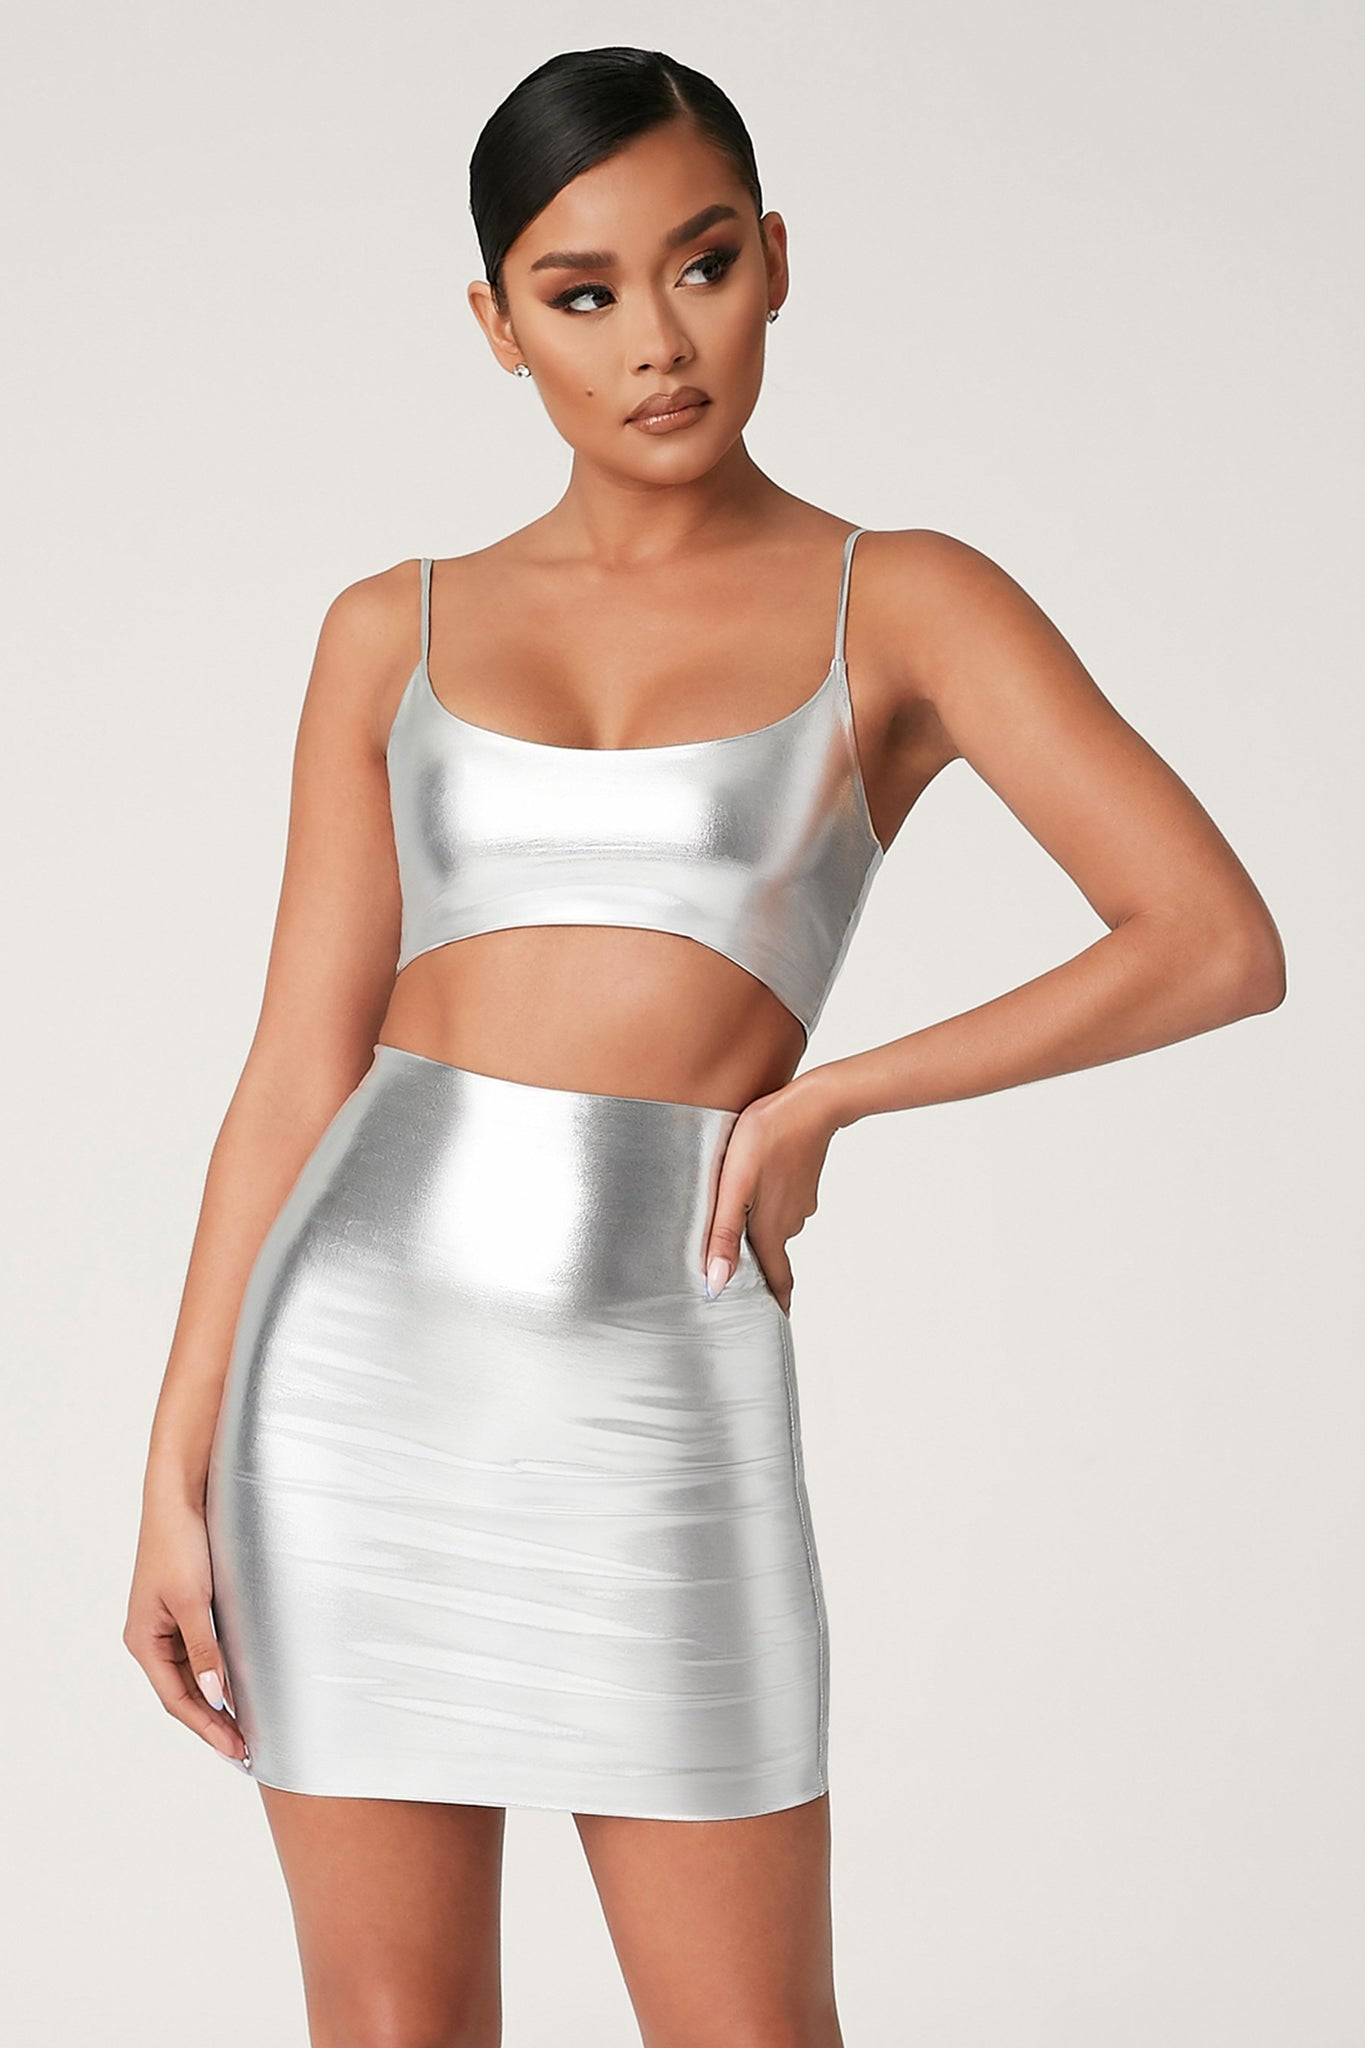 Zumi Metallic Crop Top - Silver - MESHKI